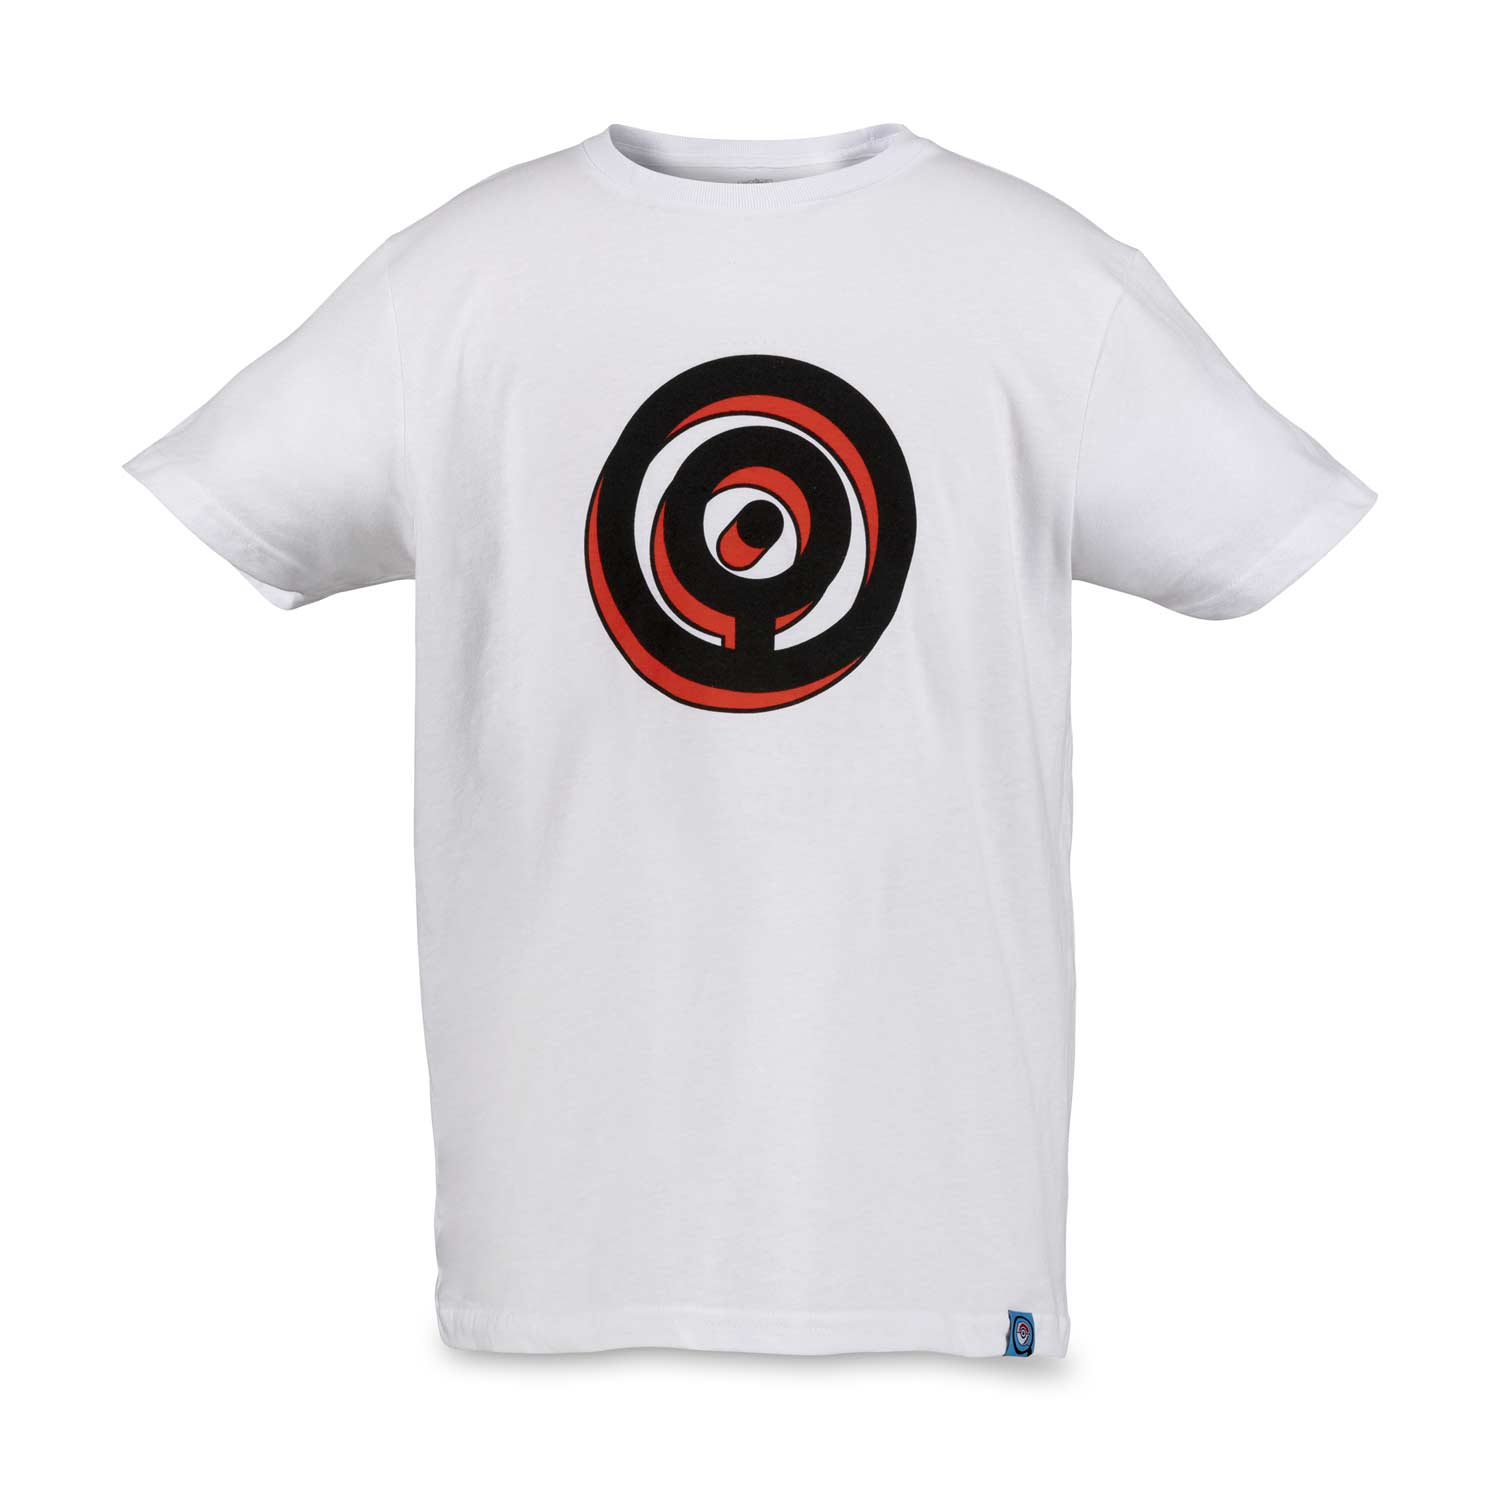 4eaf65a2 Image for POKÉMON Detective Pikachu Unown O Fitted Crew Neck T-Shirt -  Youth from